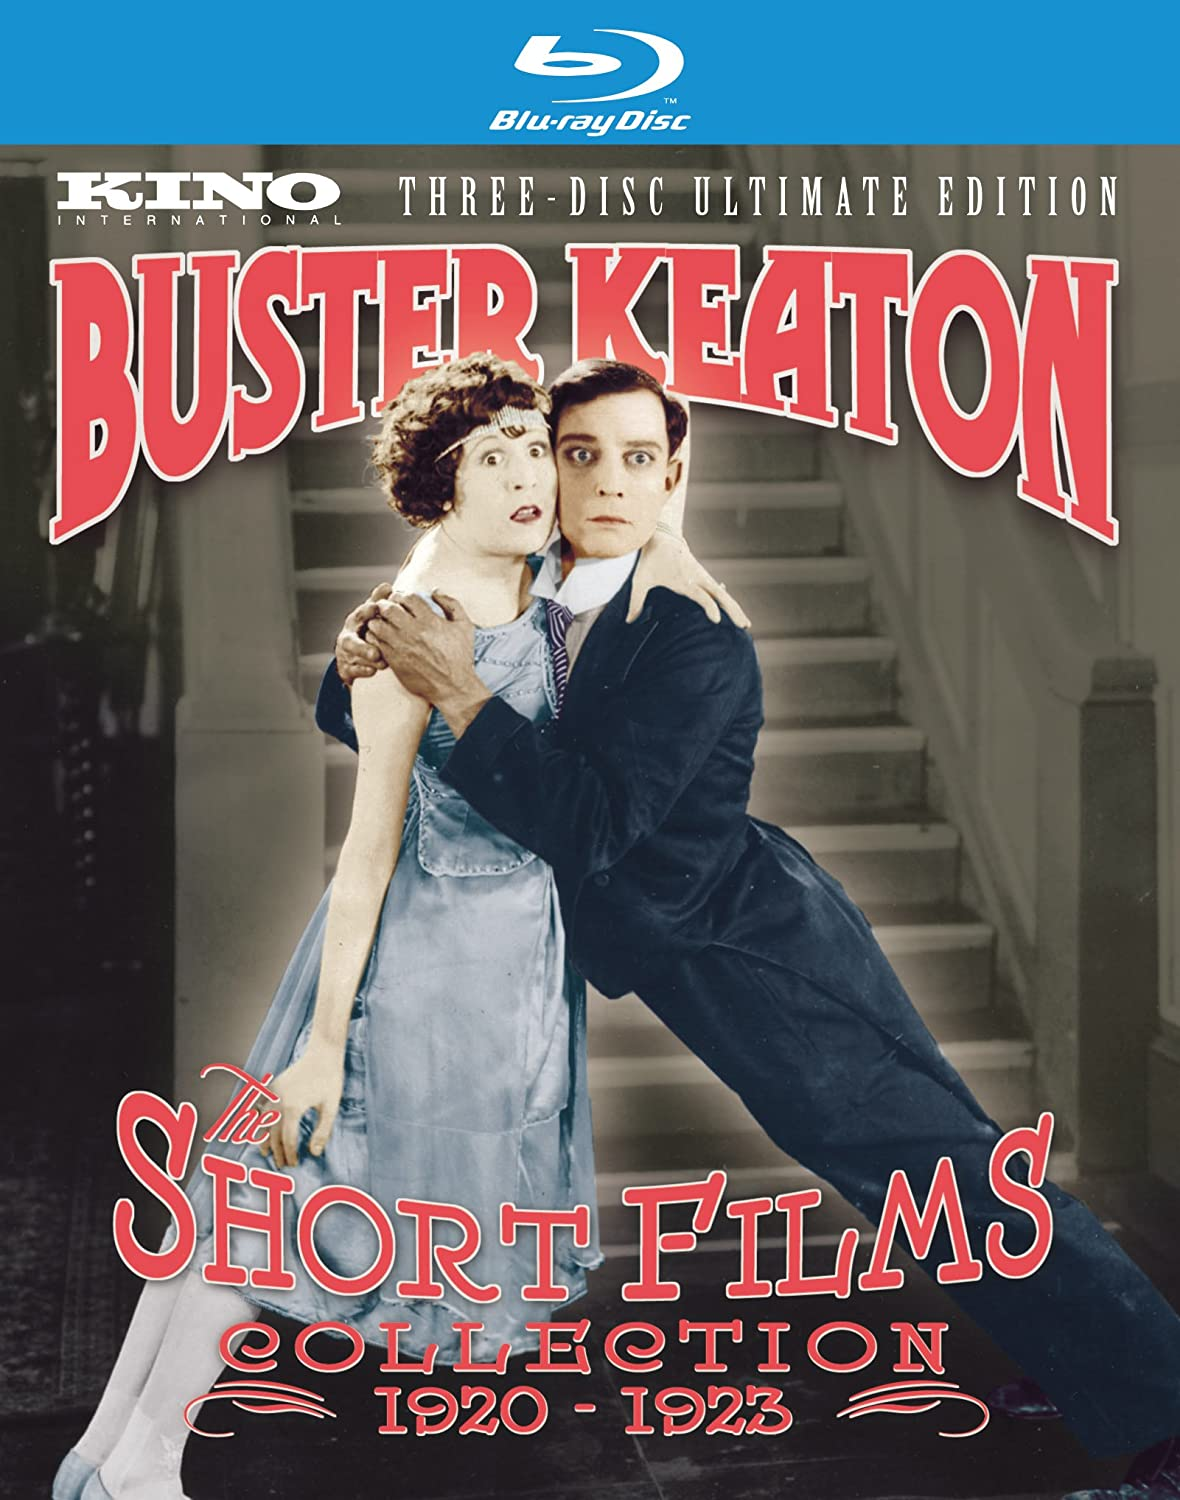 Amazoncom Buster Keaton Short Films Collection 1920 1923